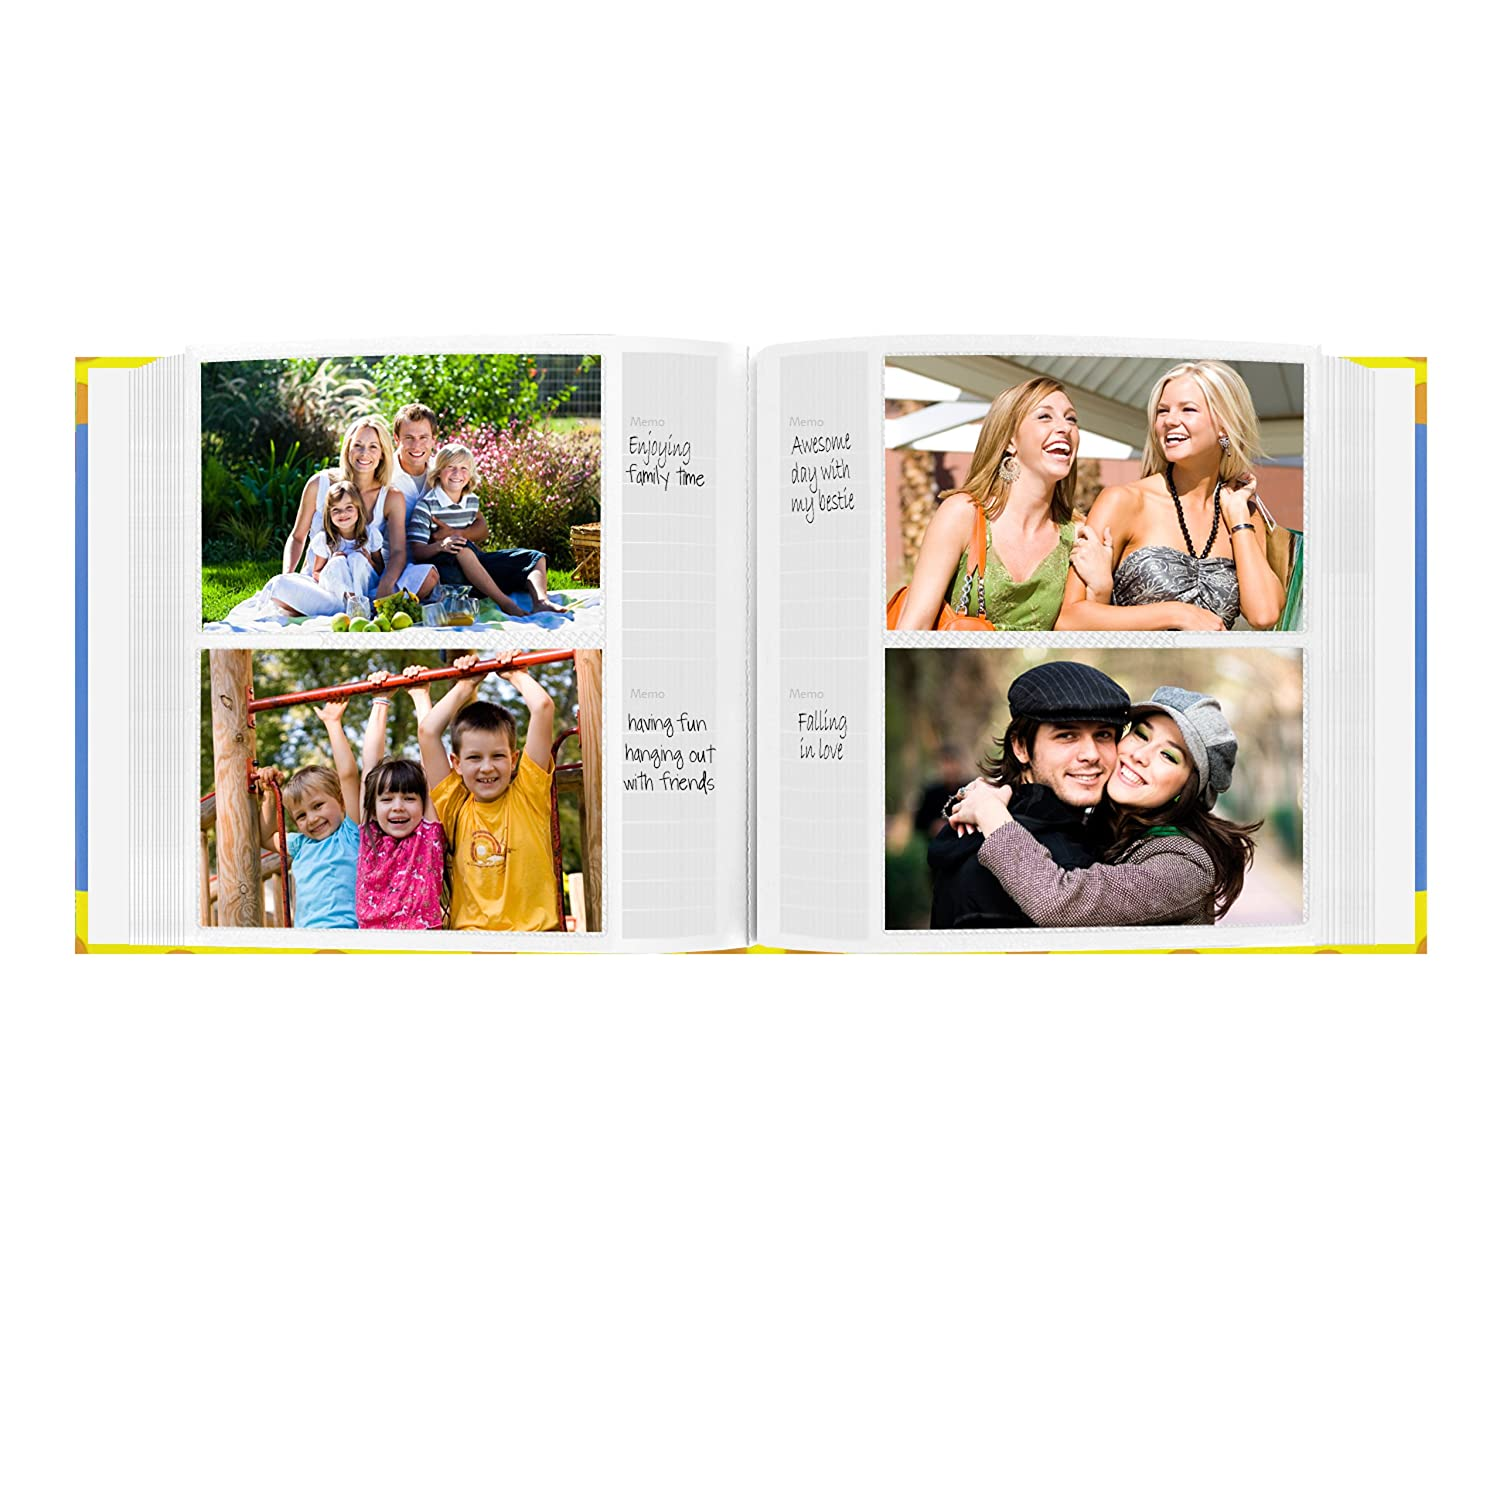 4 by 6-Inch Pioneer Photo Albums 200-Pocket 3-D Butterfly Applique Cover Photo Album